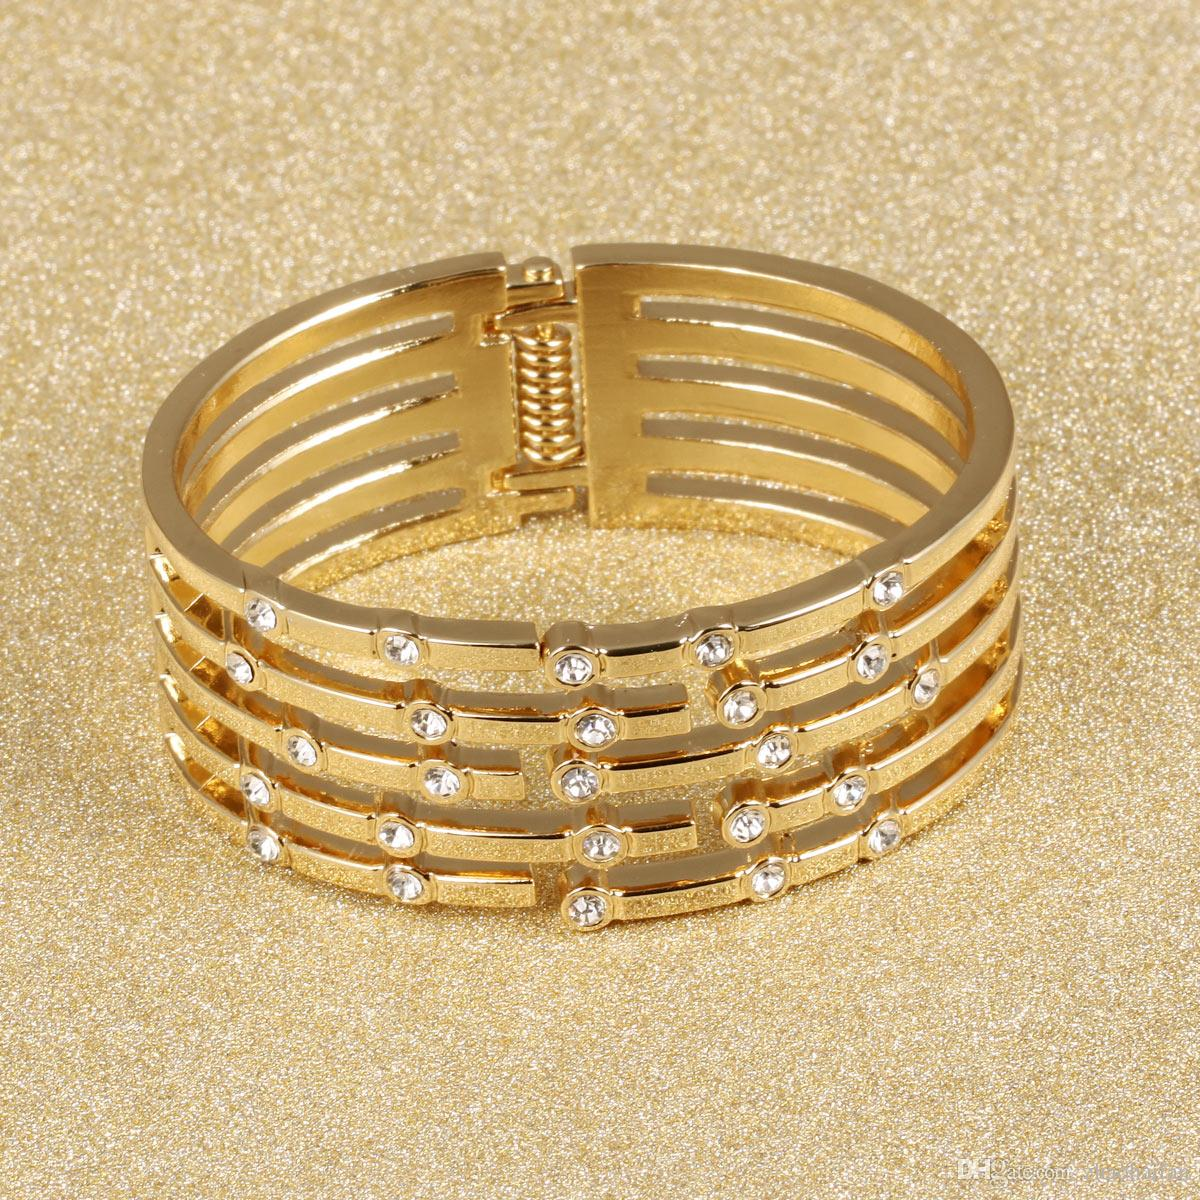 open heartknotbanglegold bangle in heart knot gold bangles